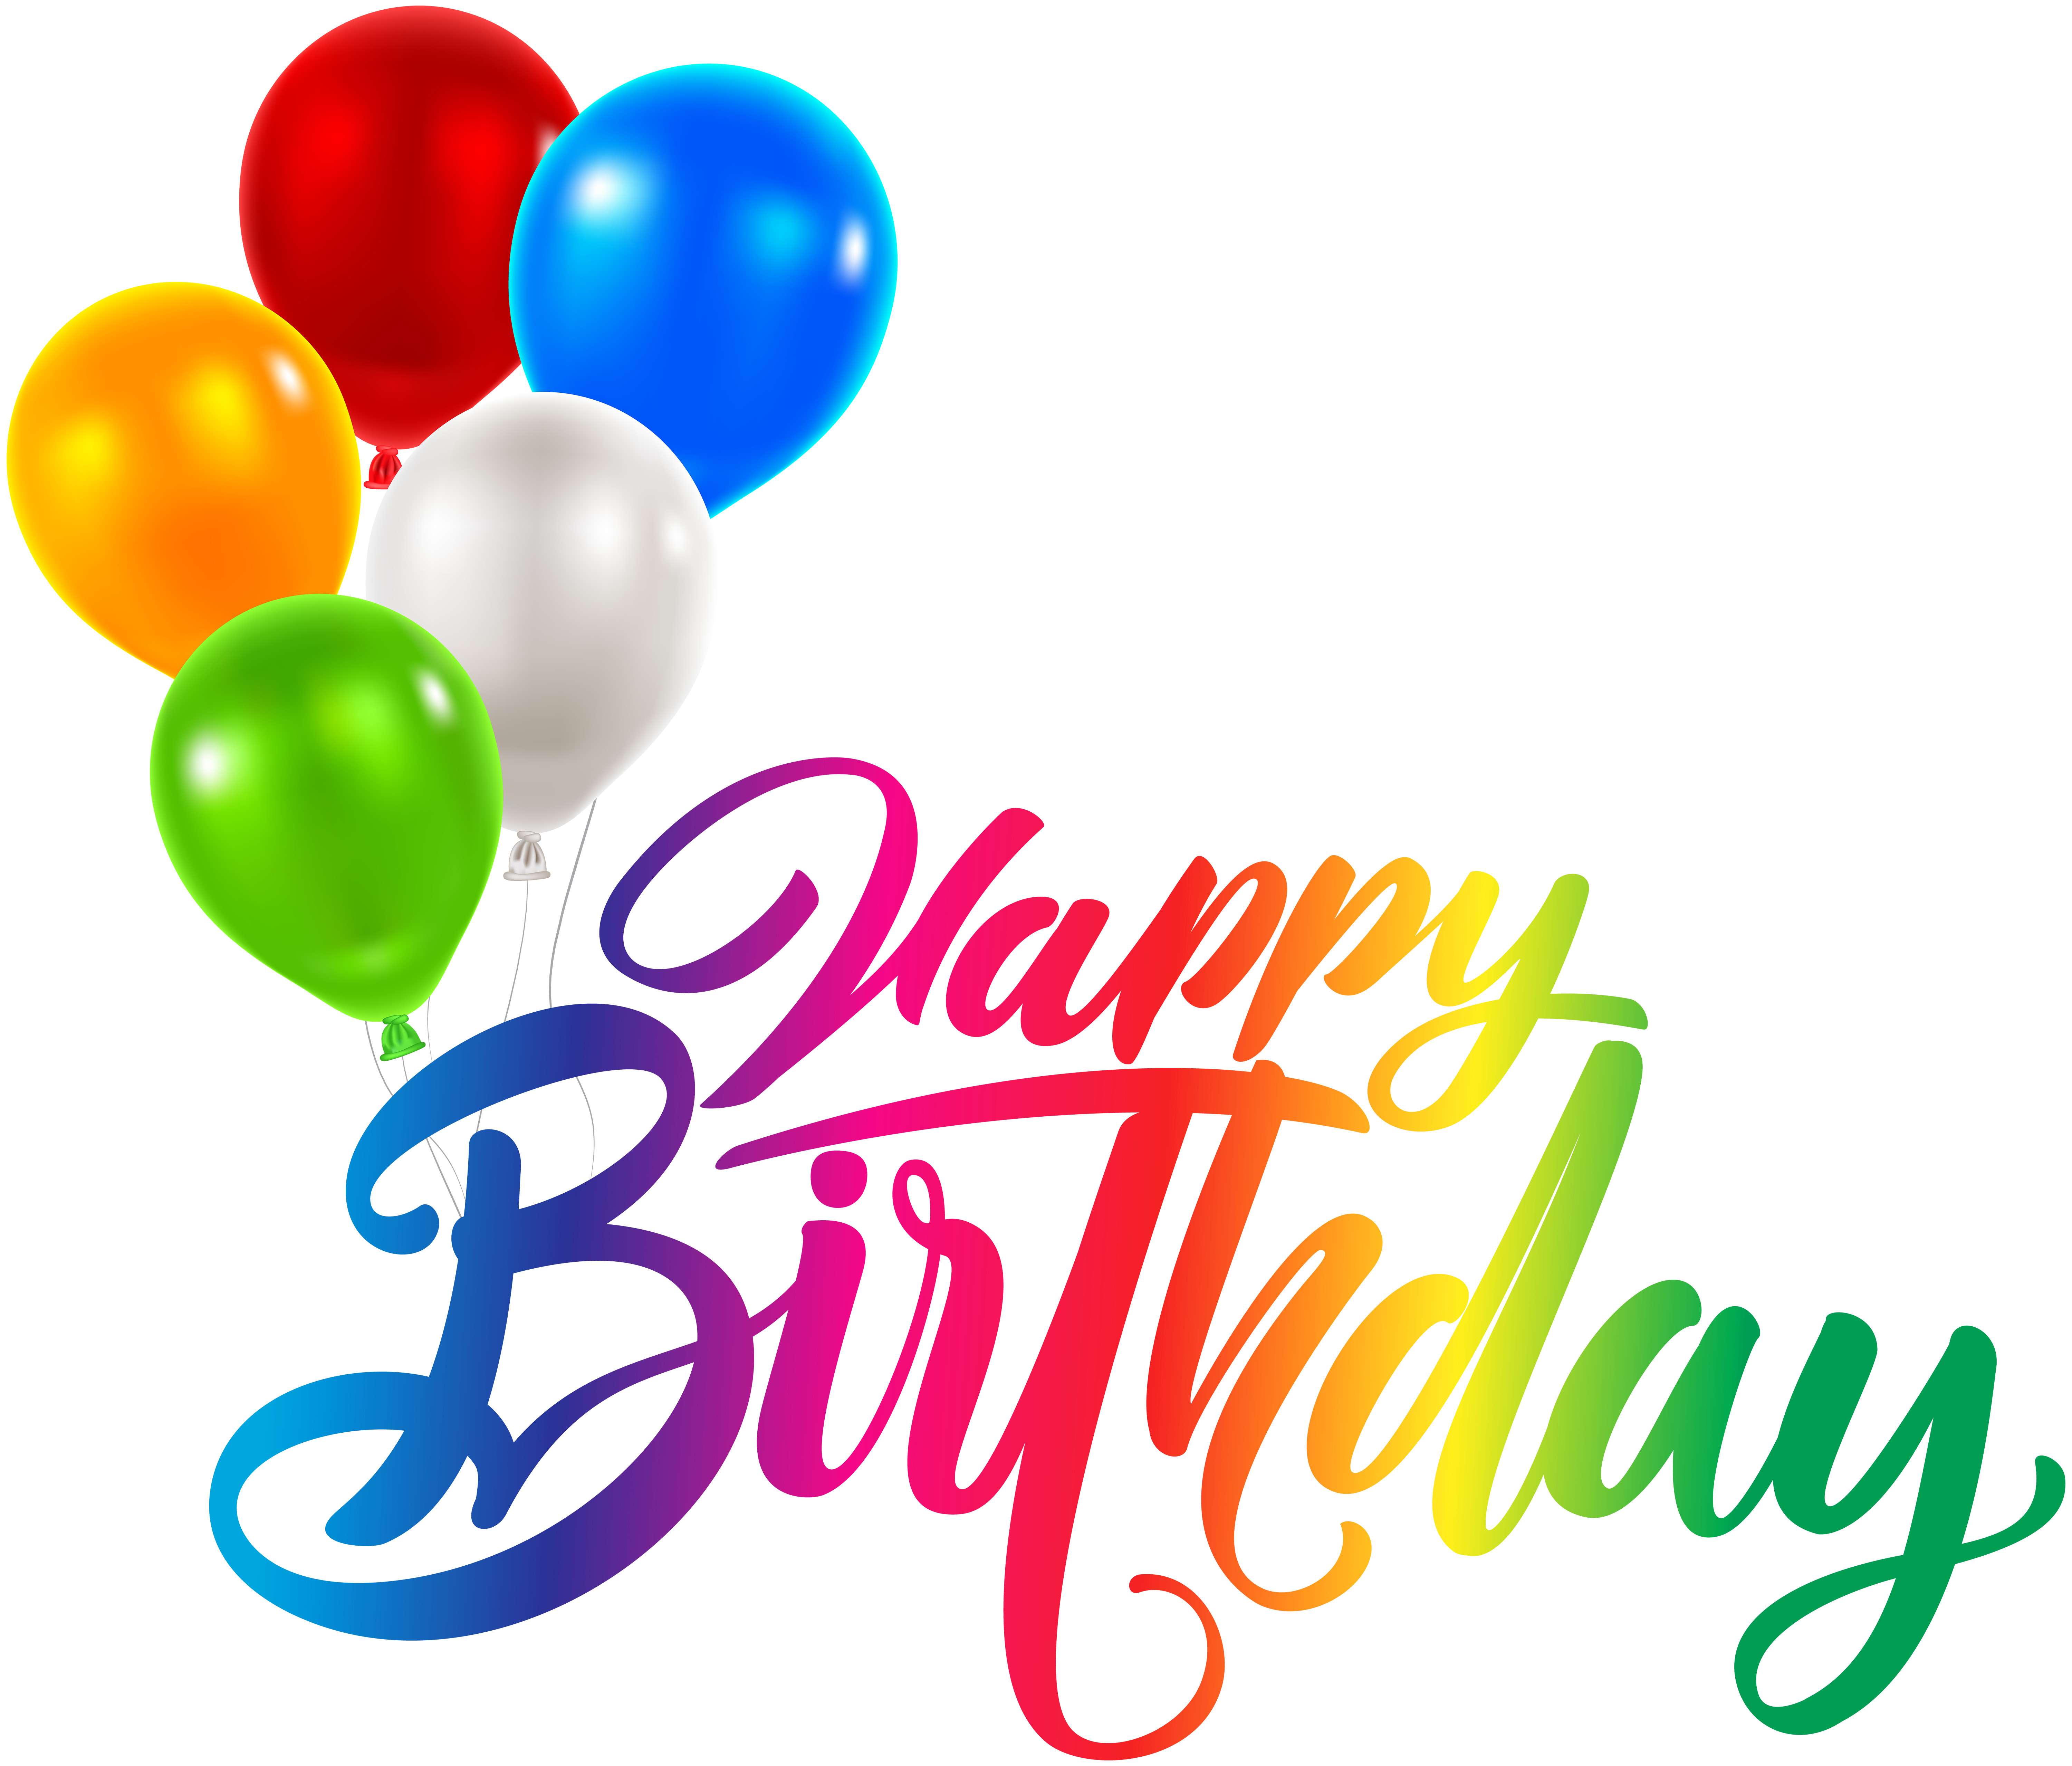 Transparent background happy birthday clipart png freeuse library Pin by Pearl Advertising on Download | Happy birthday png ... png freeuse library